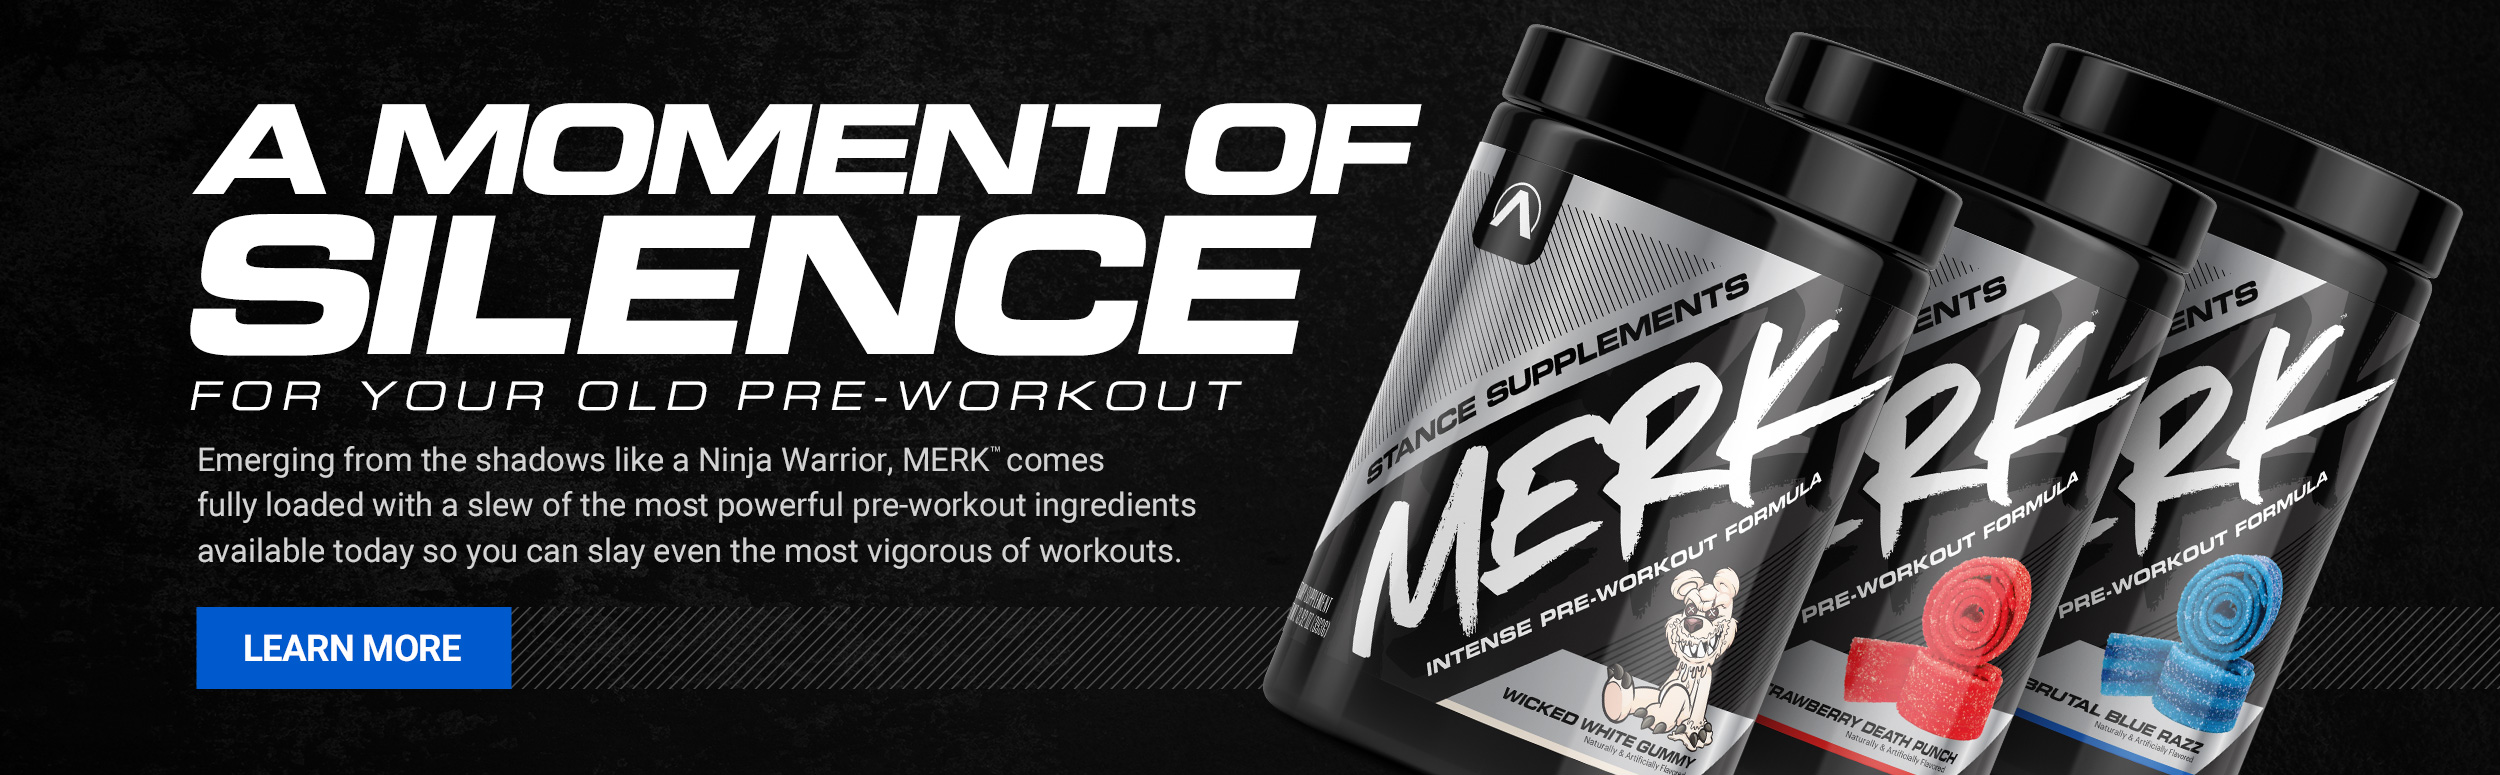 Stance Supplements MERK - A moment of silence for your old pre-workout - Click to learn more